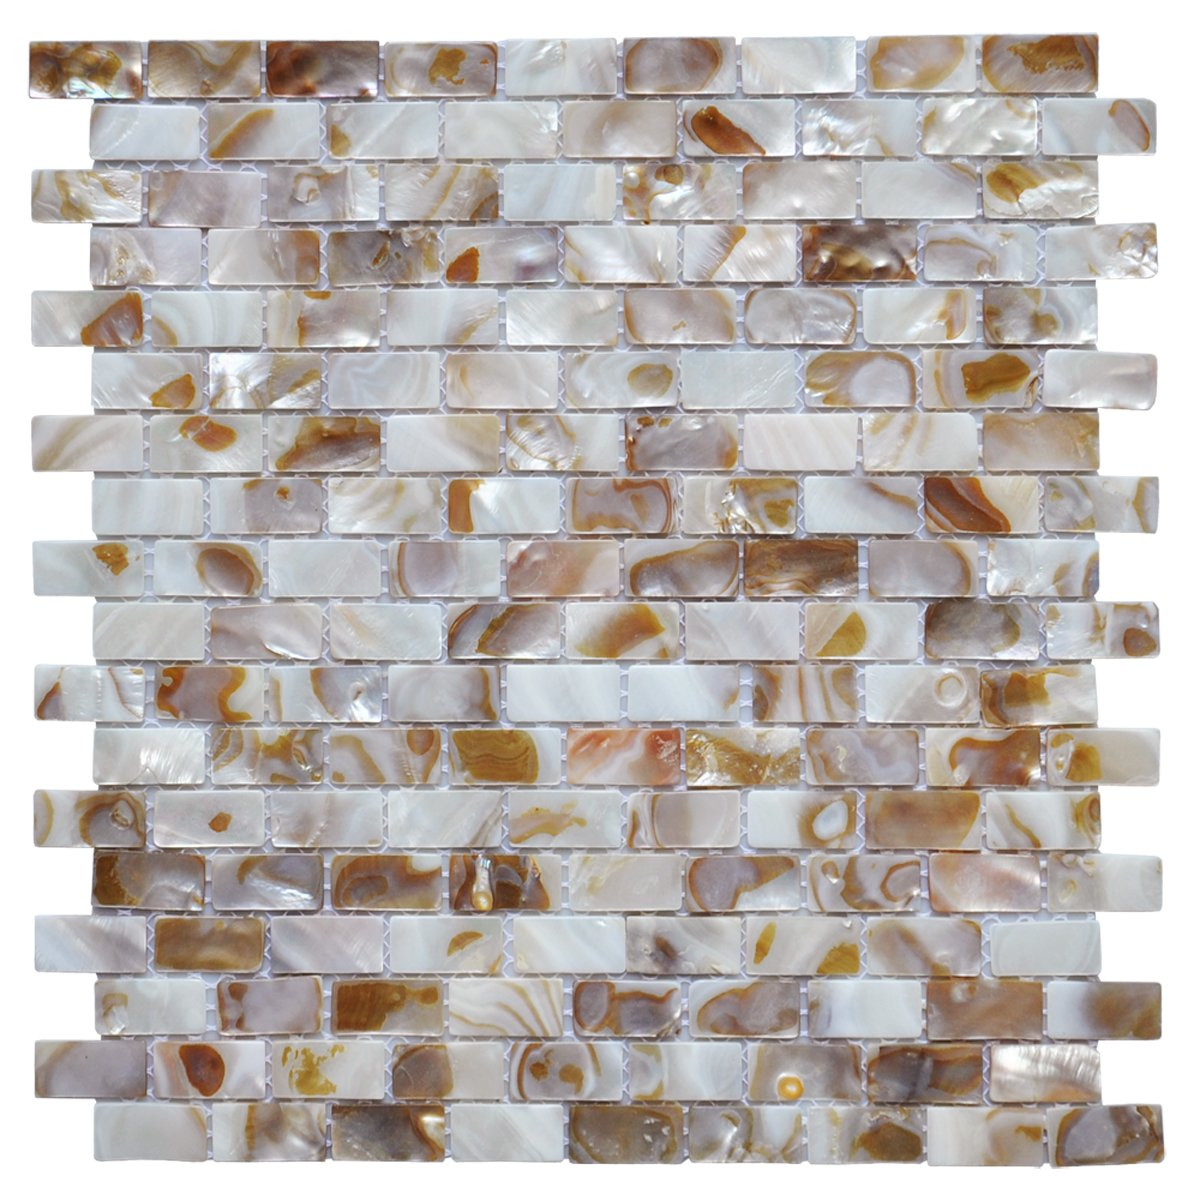 Art3d 10-Piece Mother of Pearl Shell Mosaic Backsplash Tile for Kitchen, Bathroom Walls, Spa Tile, Pool Tile, 12'' x 12'' Natural Color by Art3d